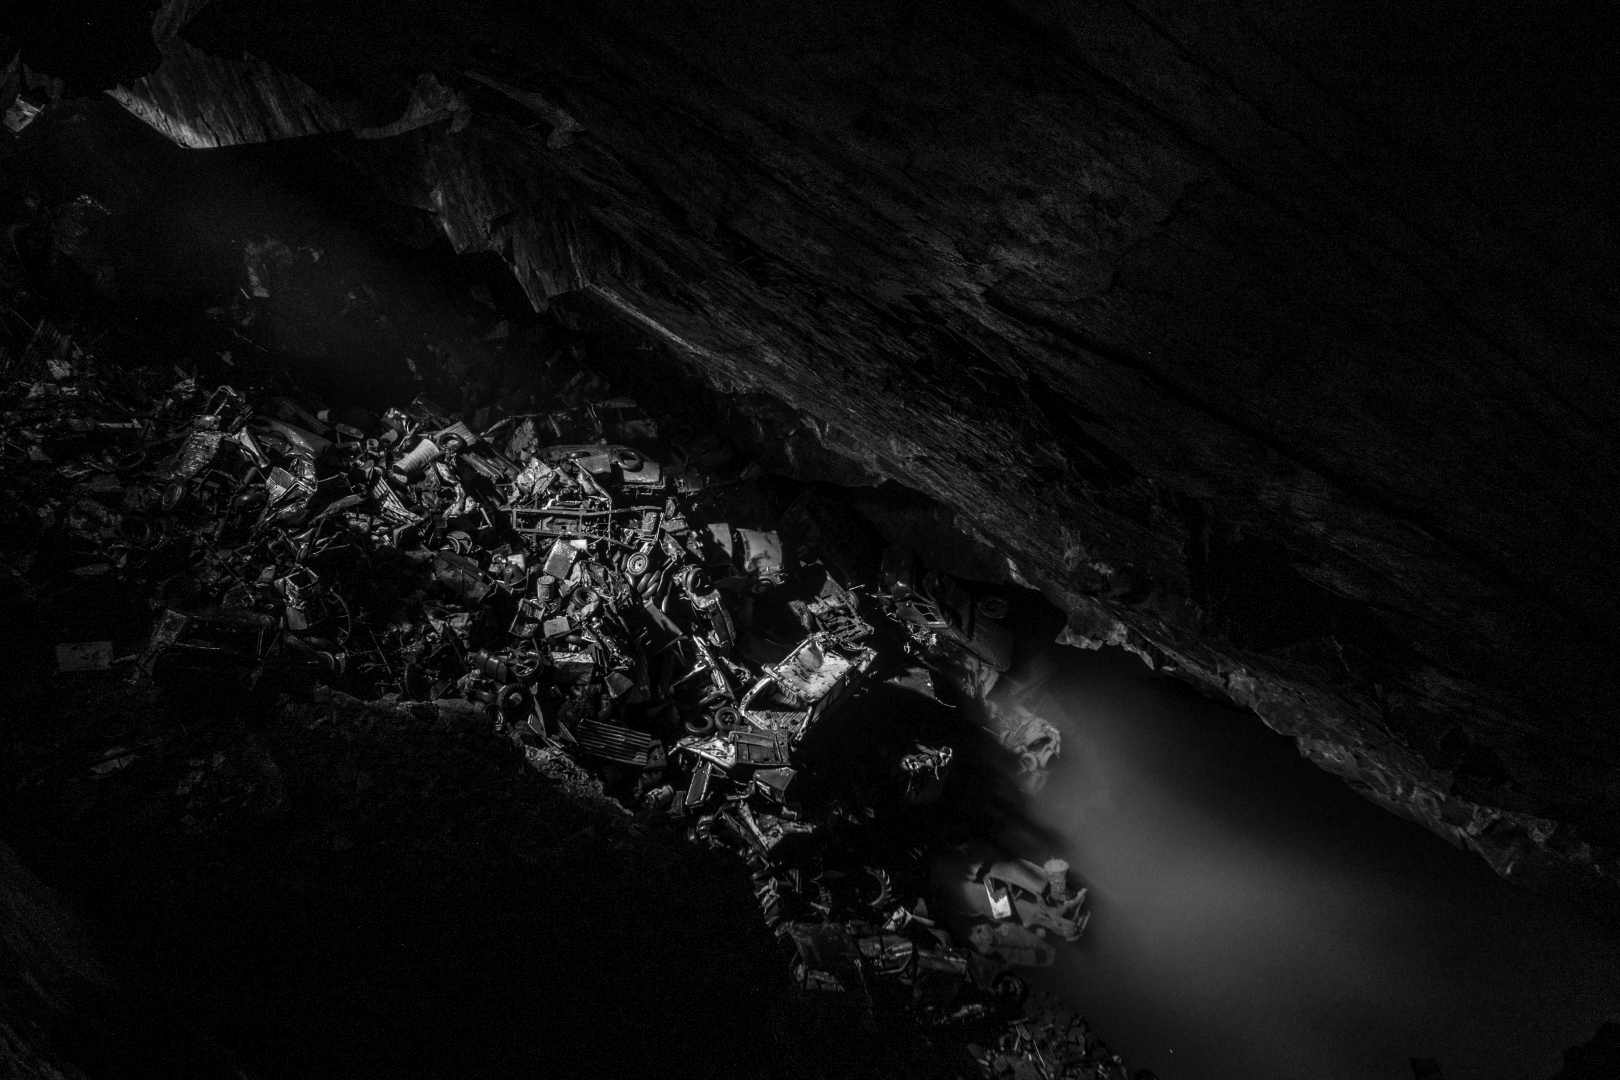 Cavern of the lost Souls